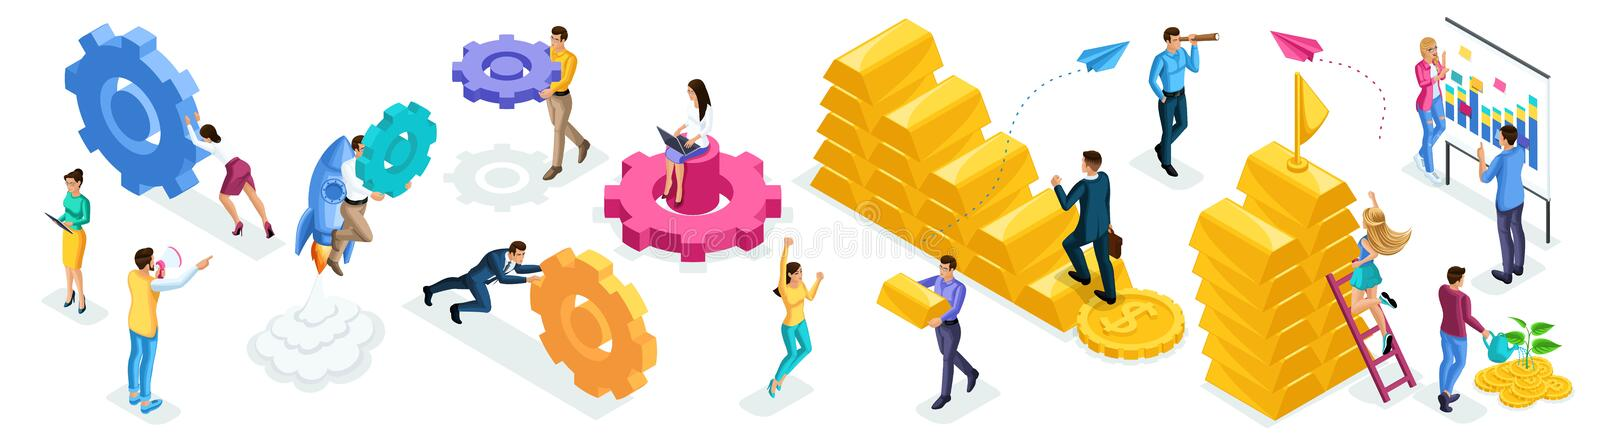 Isometric set of people and business icons on a white background. People in the process of work, brainstorming, teamwork royalty free illustration